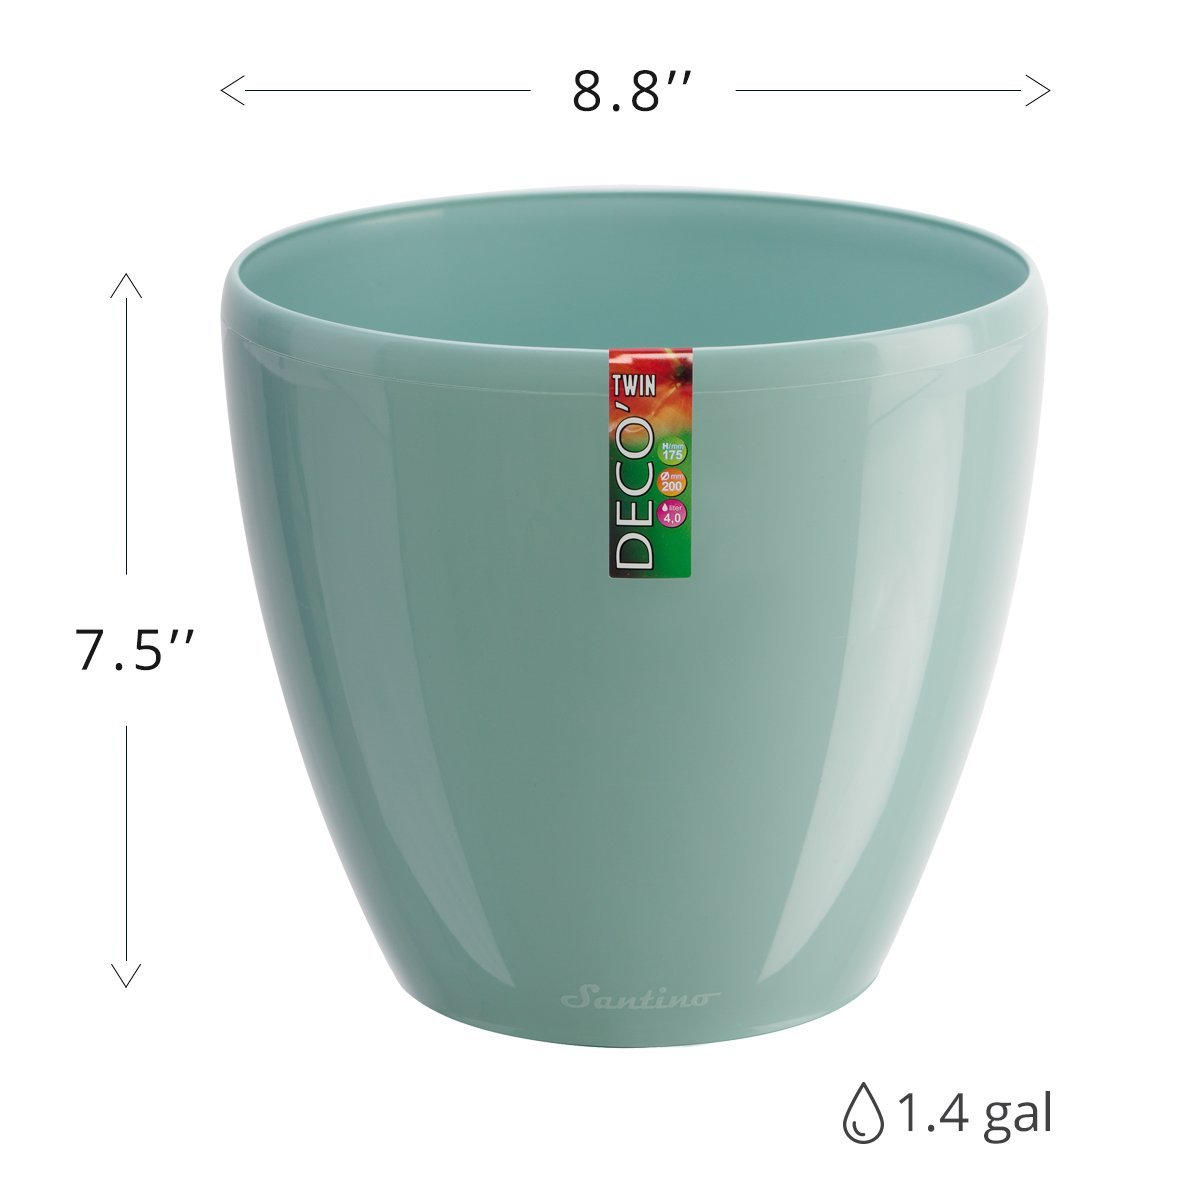 Santino Self Watering Planter DECO 8.8 Inch Jade Flower Pot by Santino (Image #4)